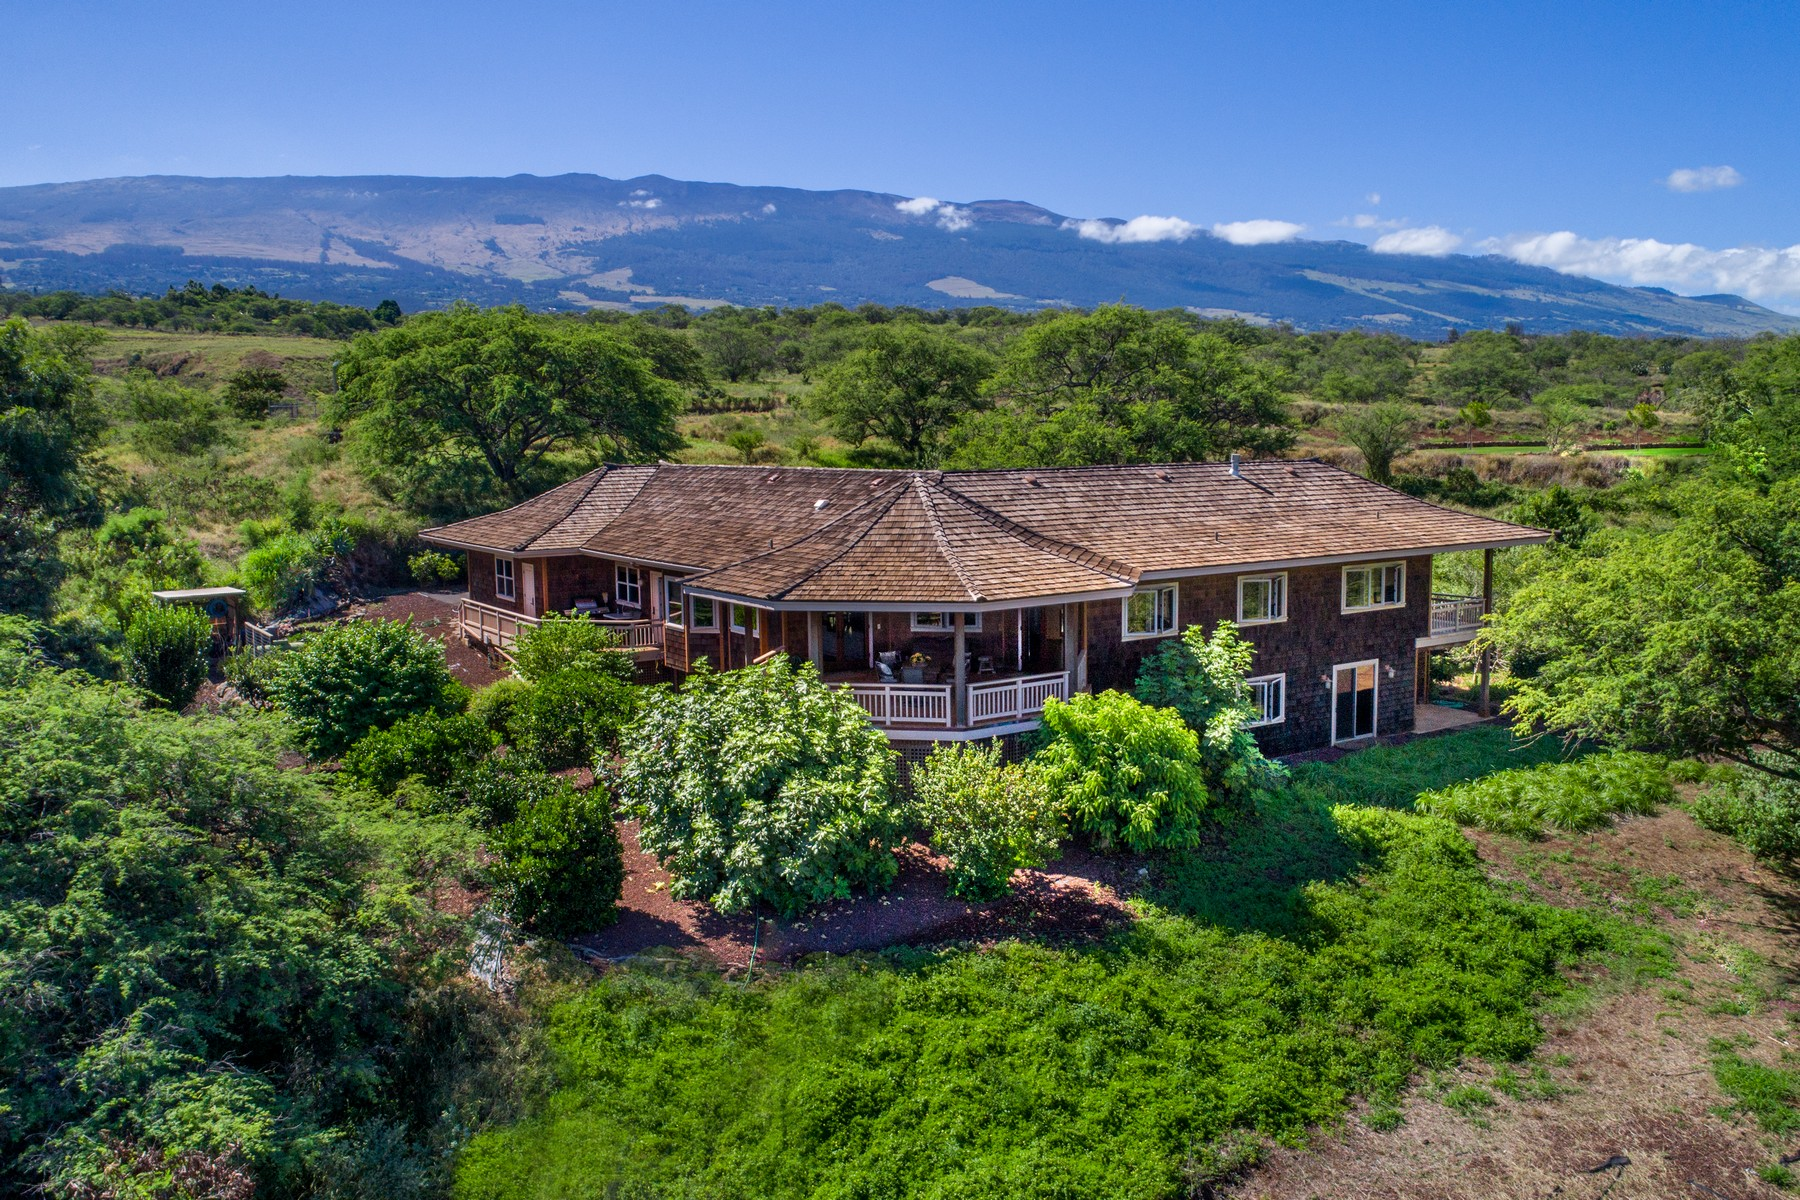 Moradia para Venda às Maui Upcountry Classic Plantation Home On 6 Acres 101 Ikena Kai Place Kula, Havaí 96790 Estados Unidos